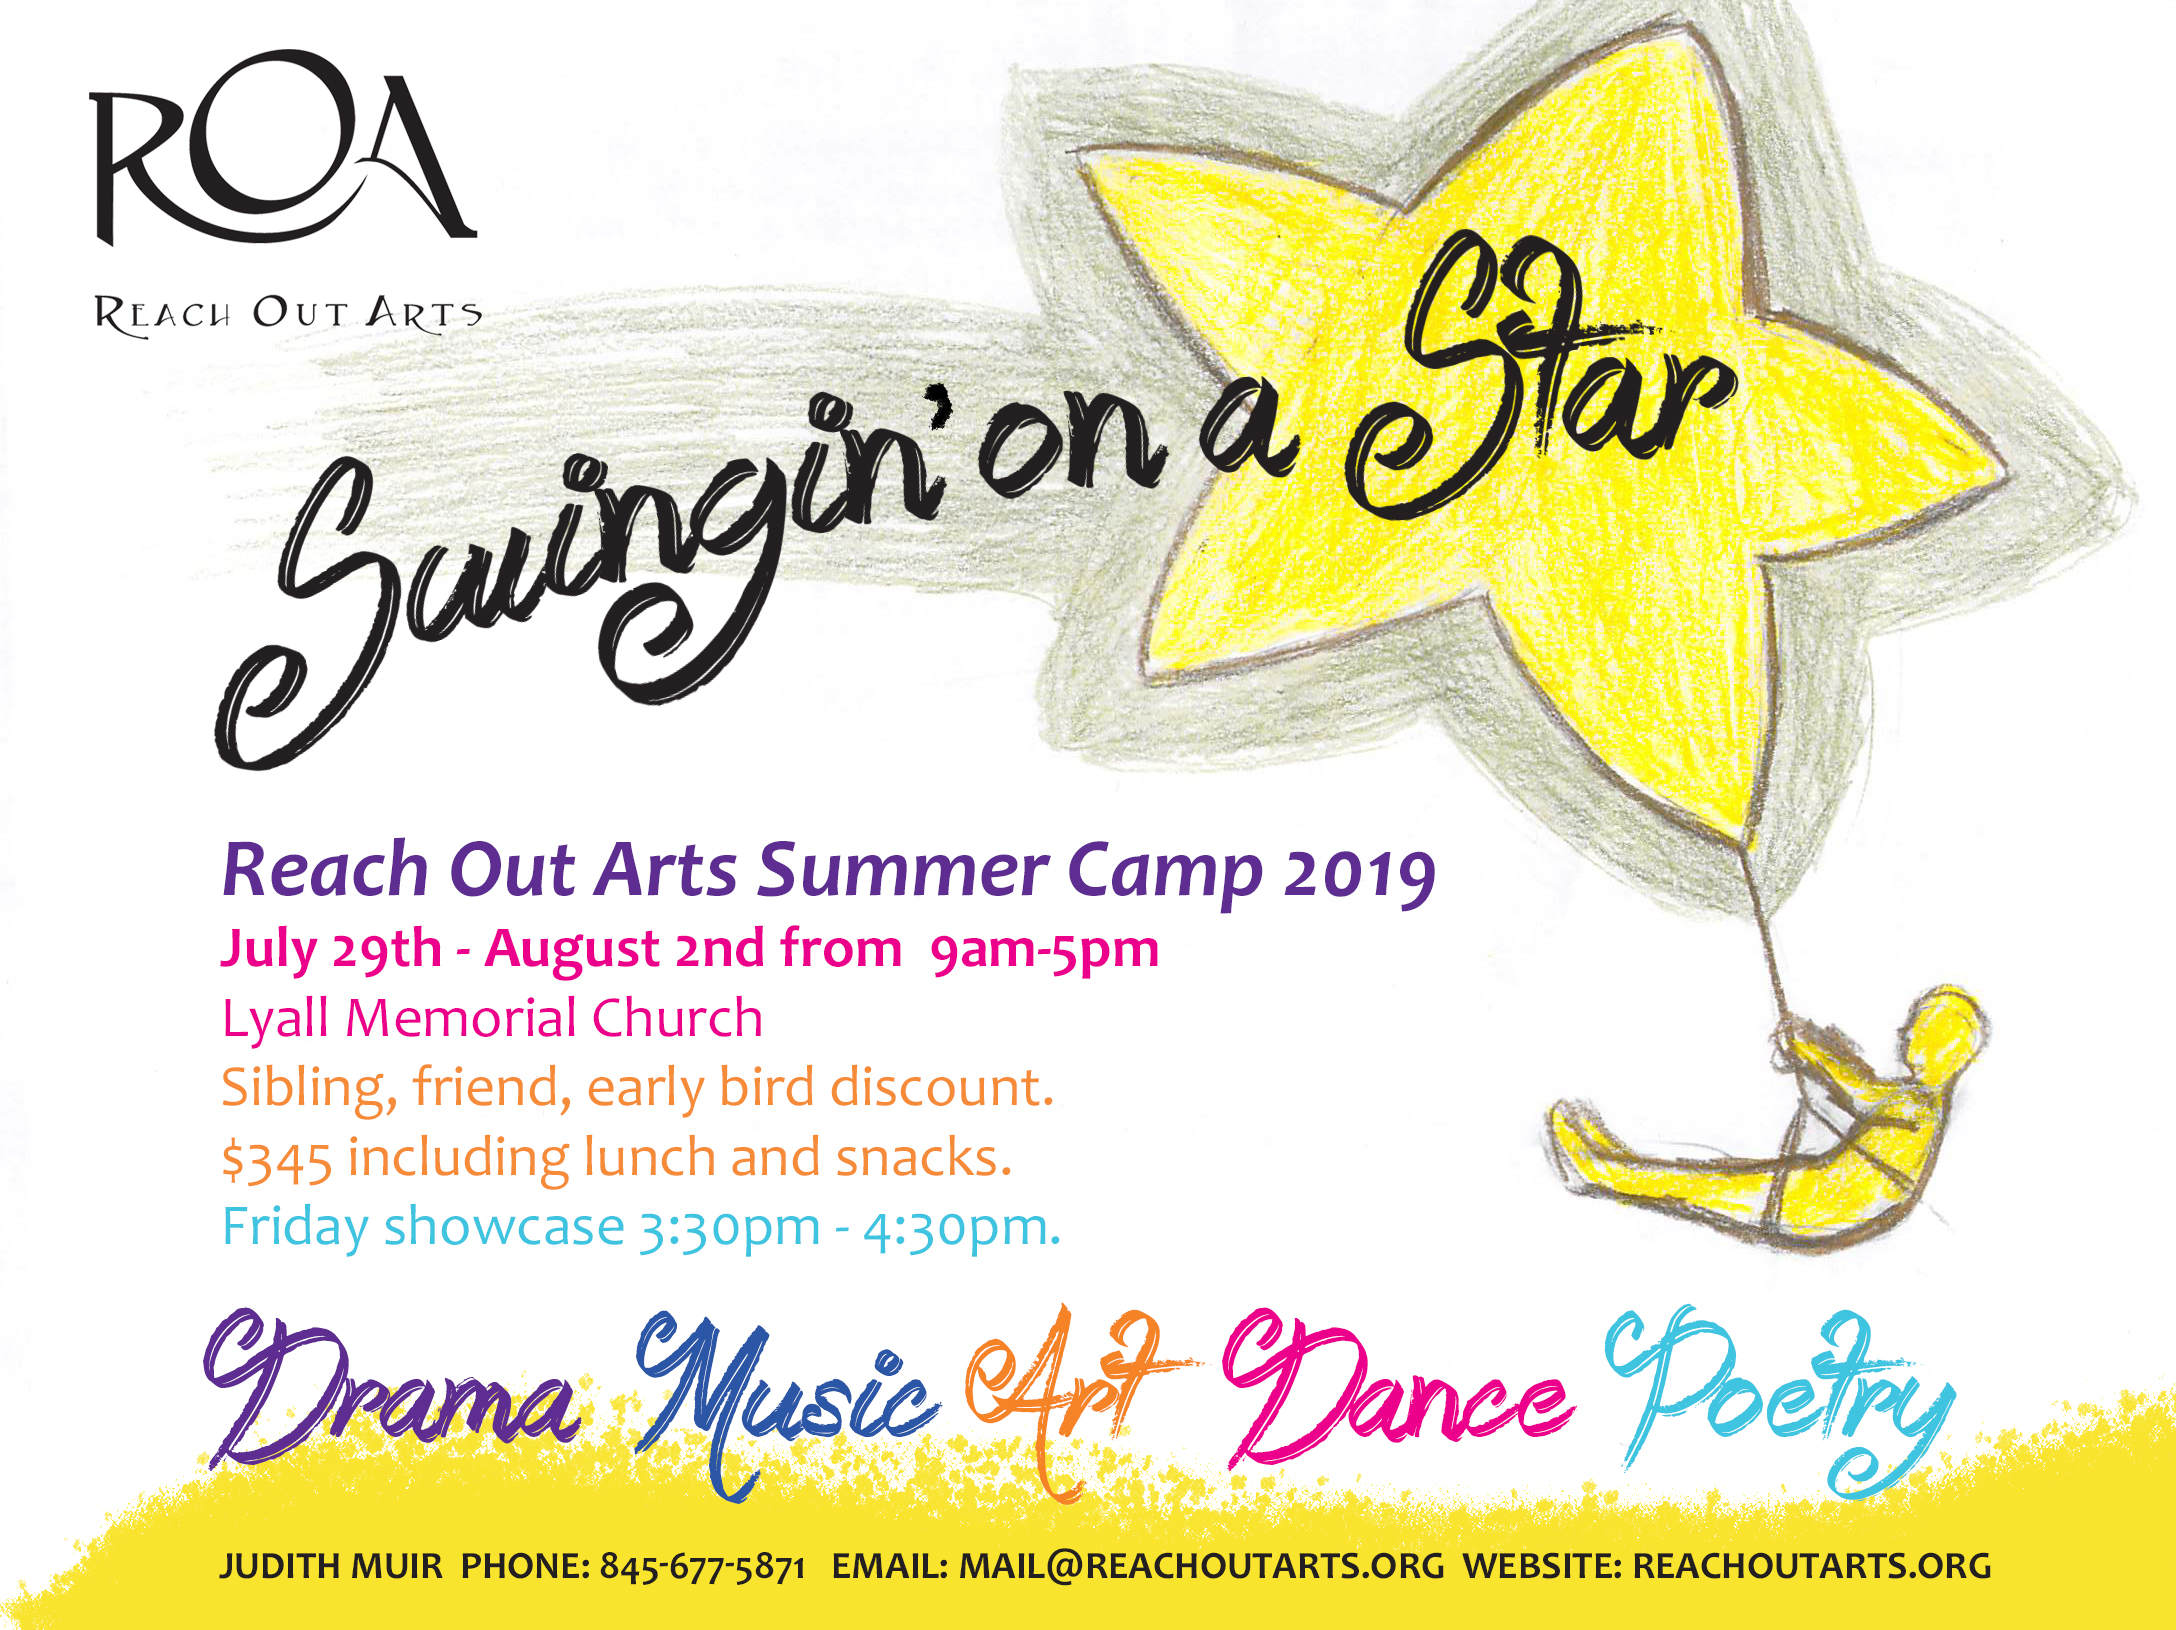 image of Reach Out Arts 2019 Summer Camp Flyer